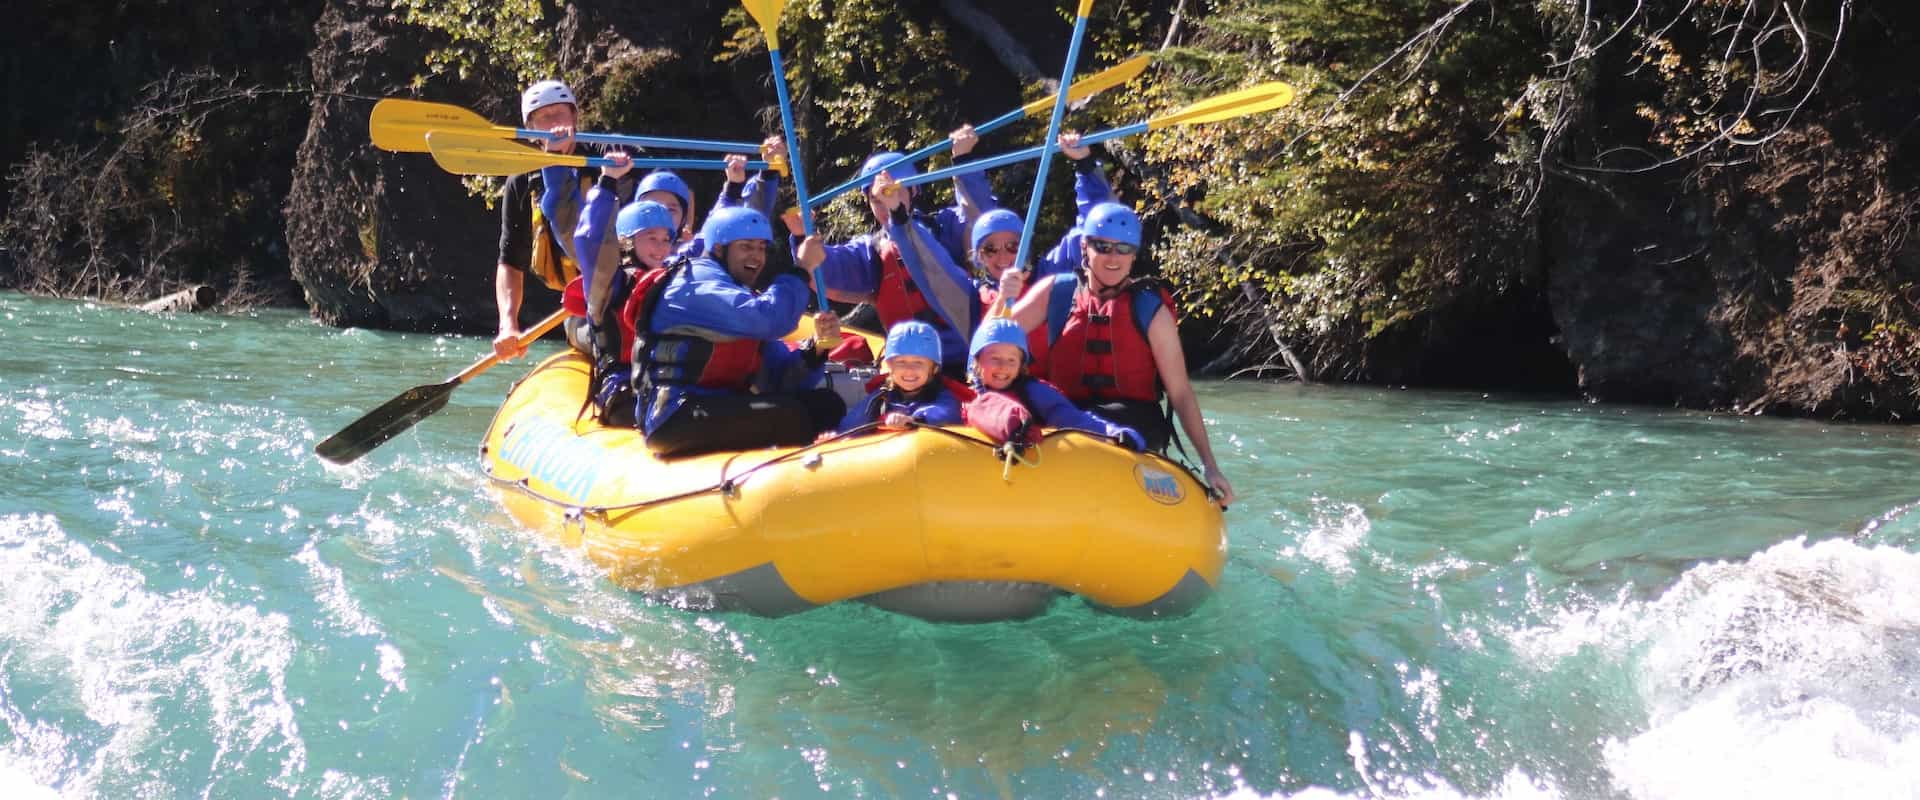 Family friendly rafting rapids on the Kananaskis River in the Rockies